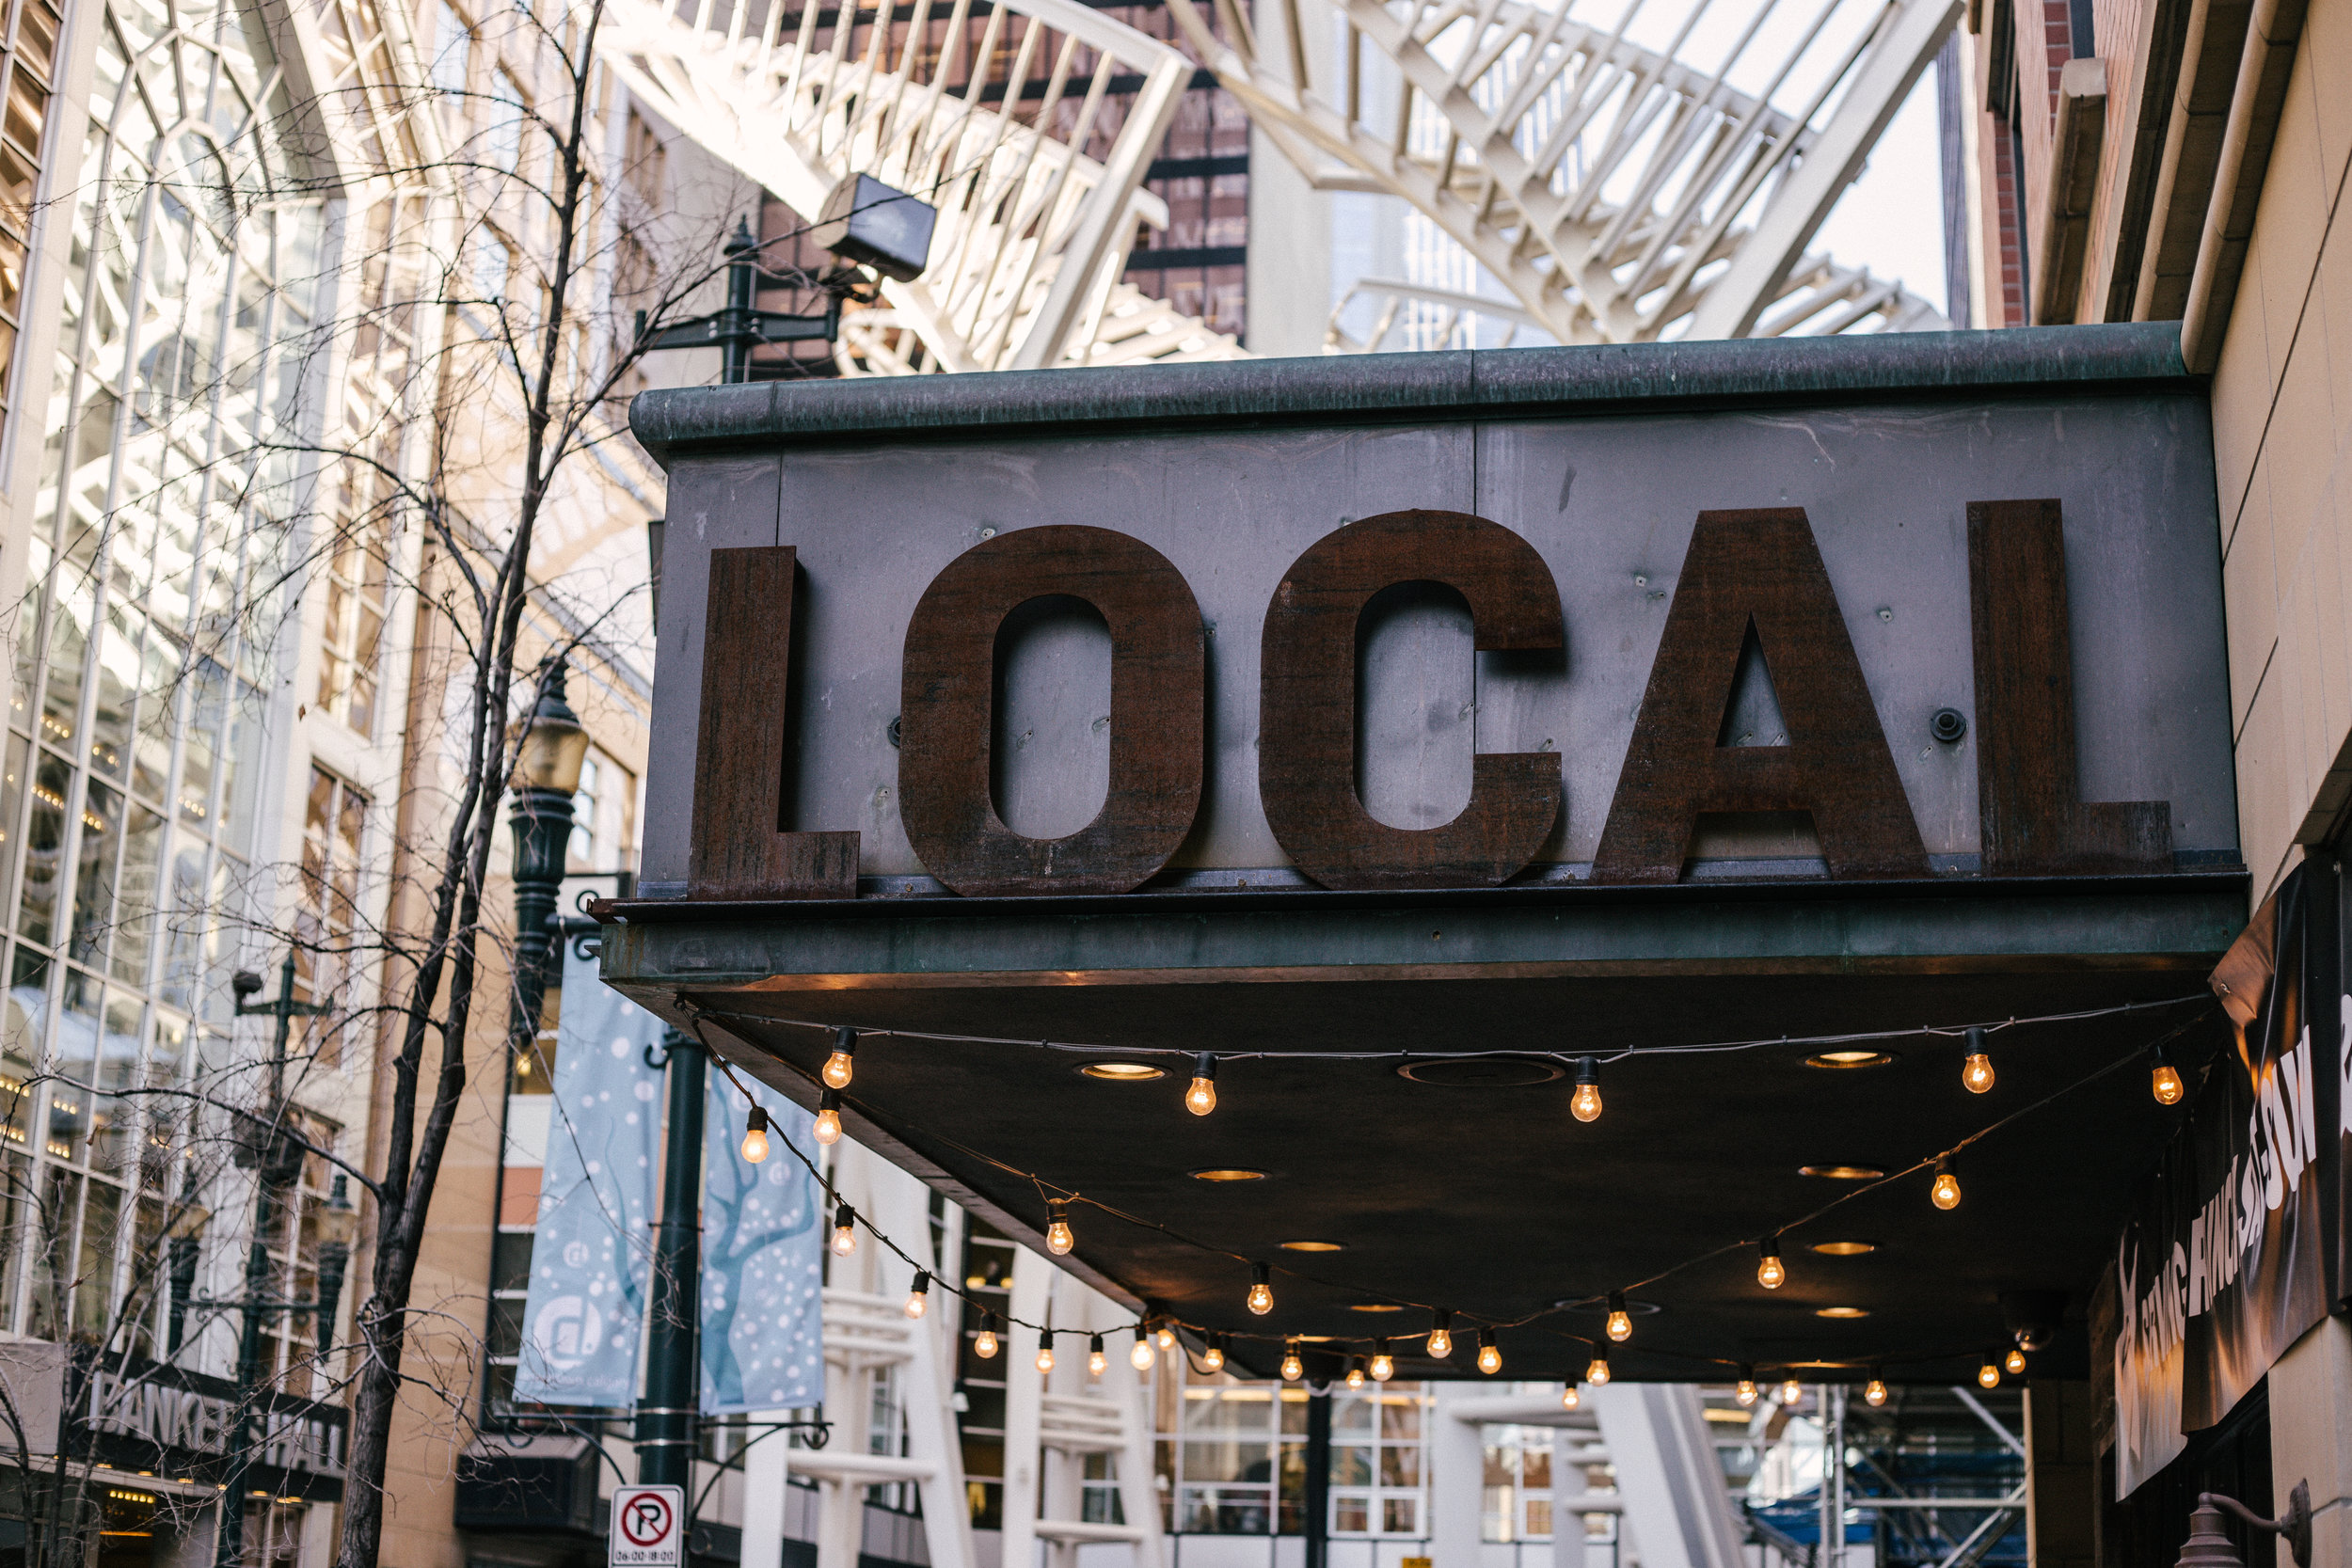 We live in a global market. Why go local?